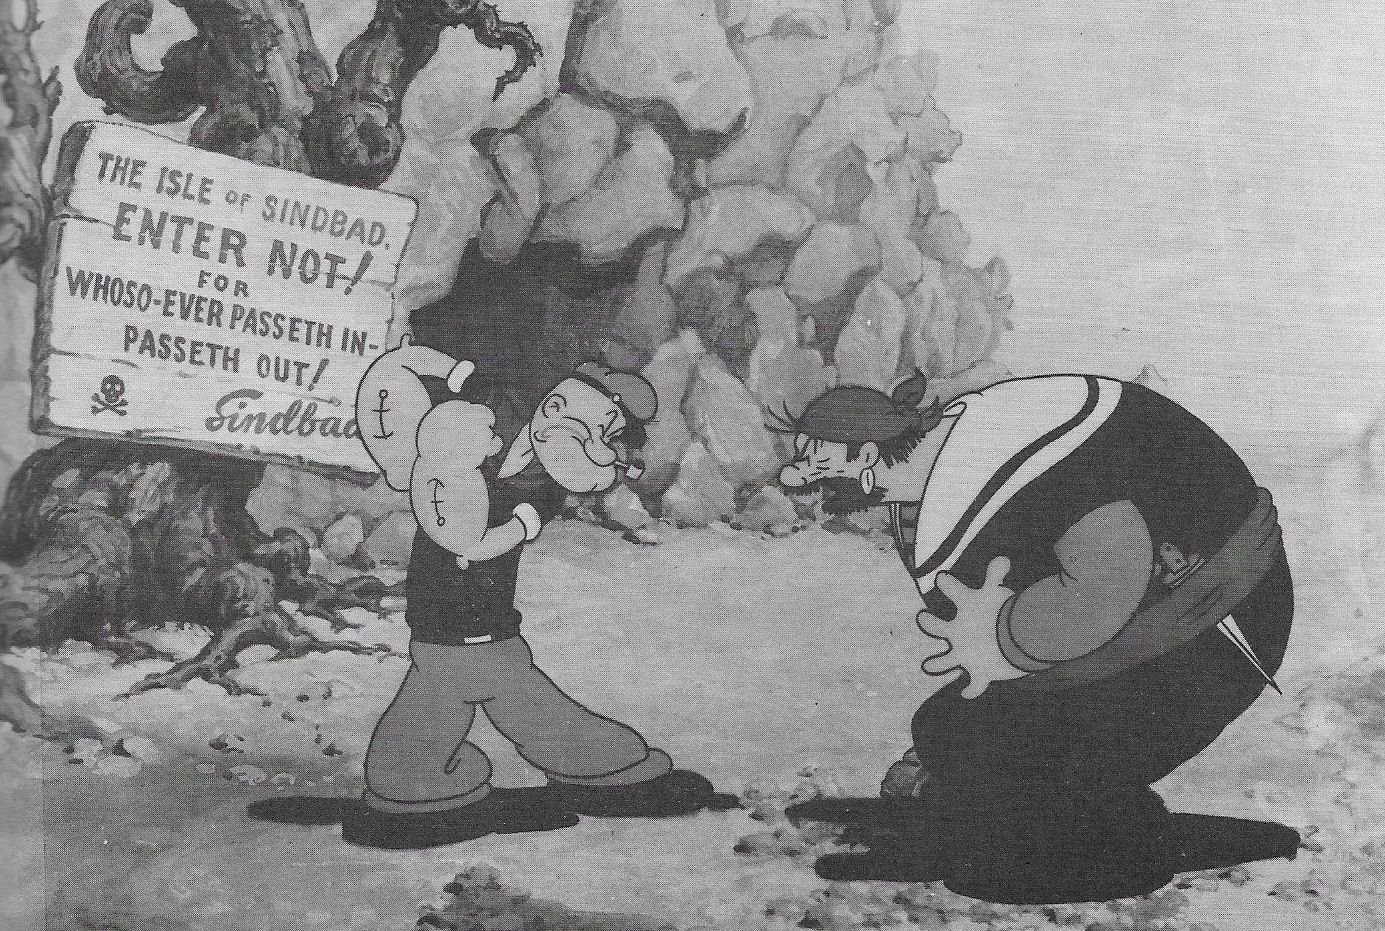 Popeye Meets Sinbad The Sailor Lil Sweet Pea Movie free download HD 720p